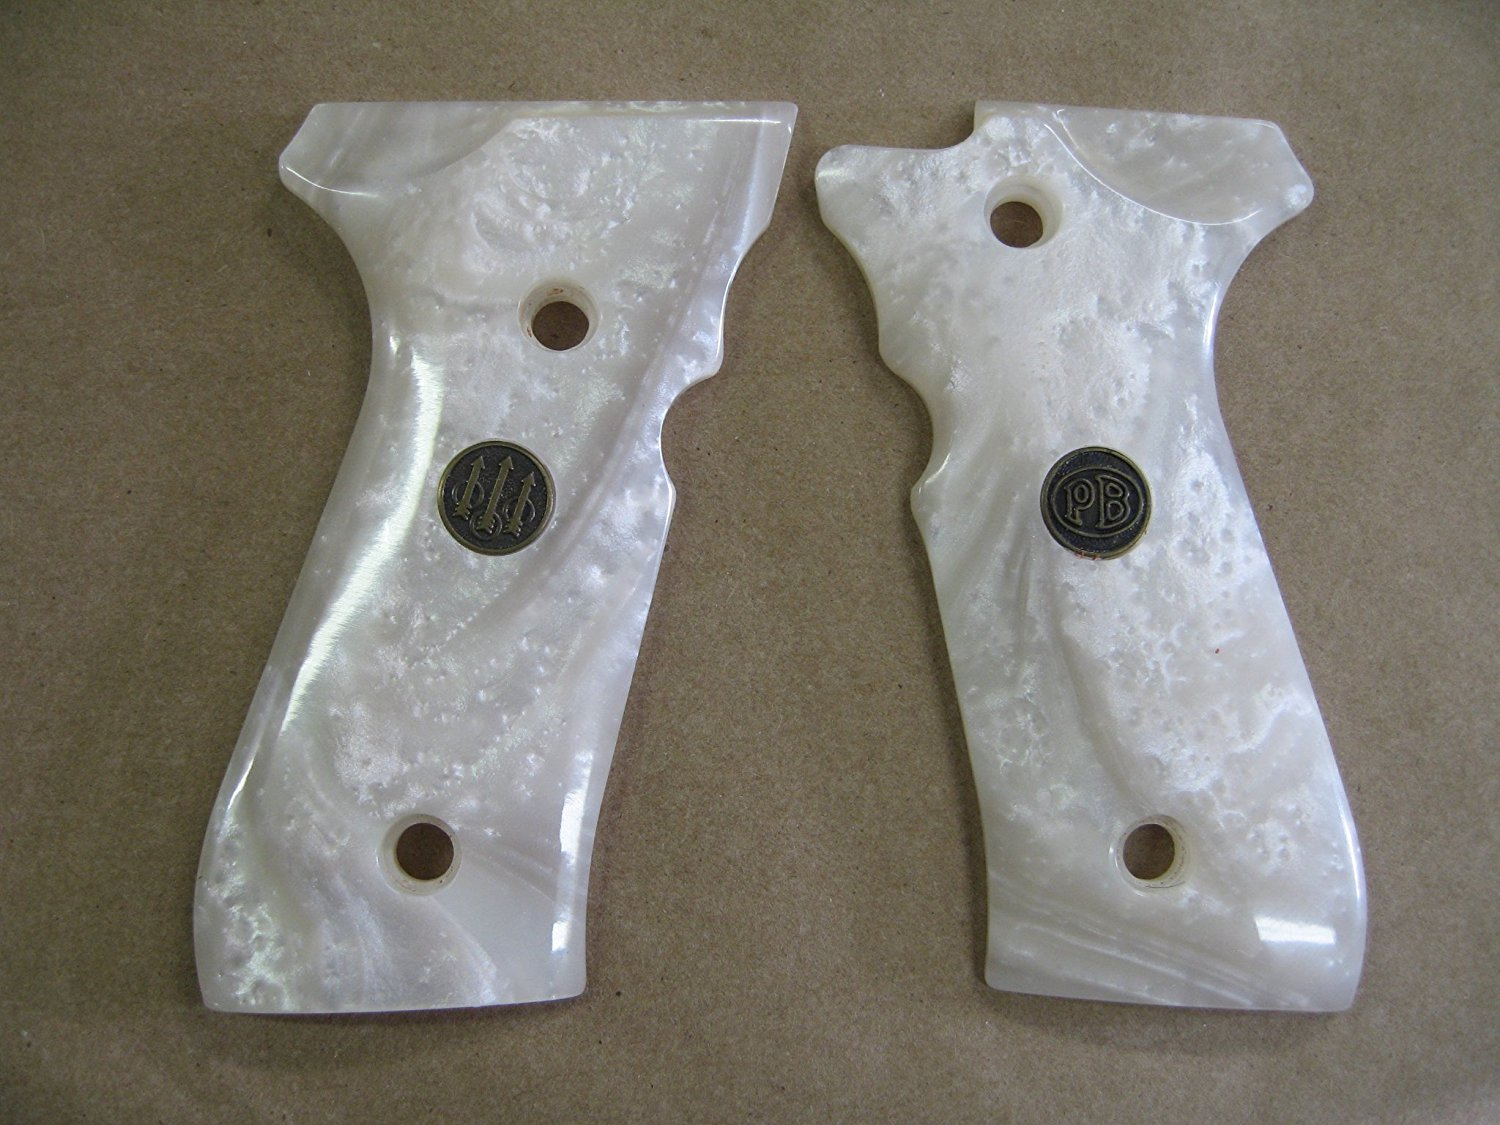 Cheap White Pearl Grips Find White Pearl Grips Deals On Line At Alibaba Com